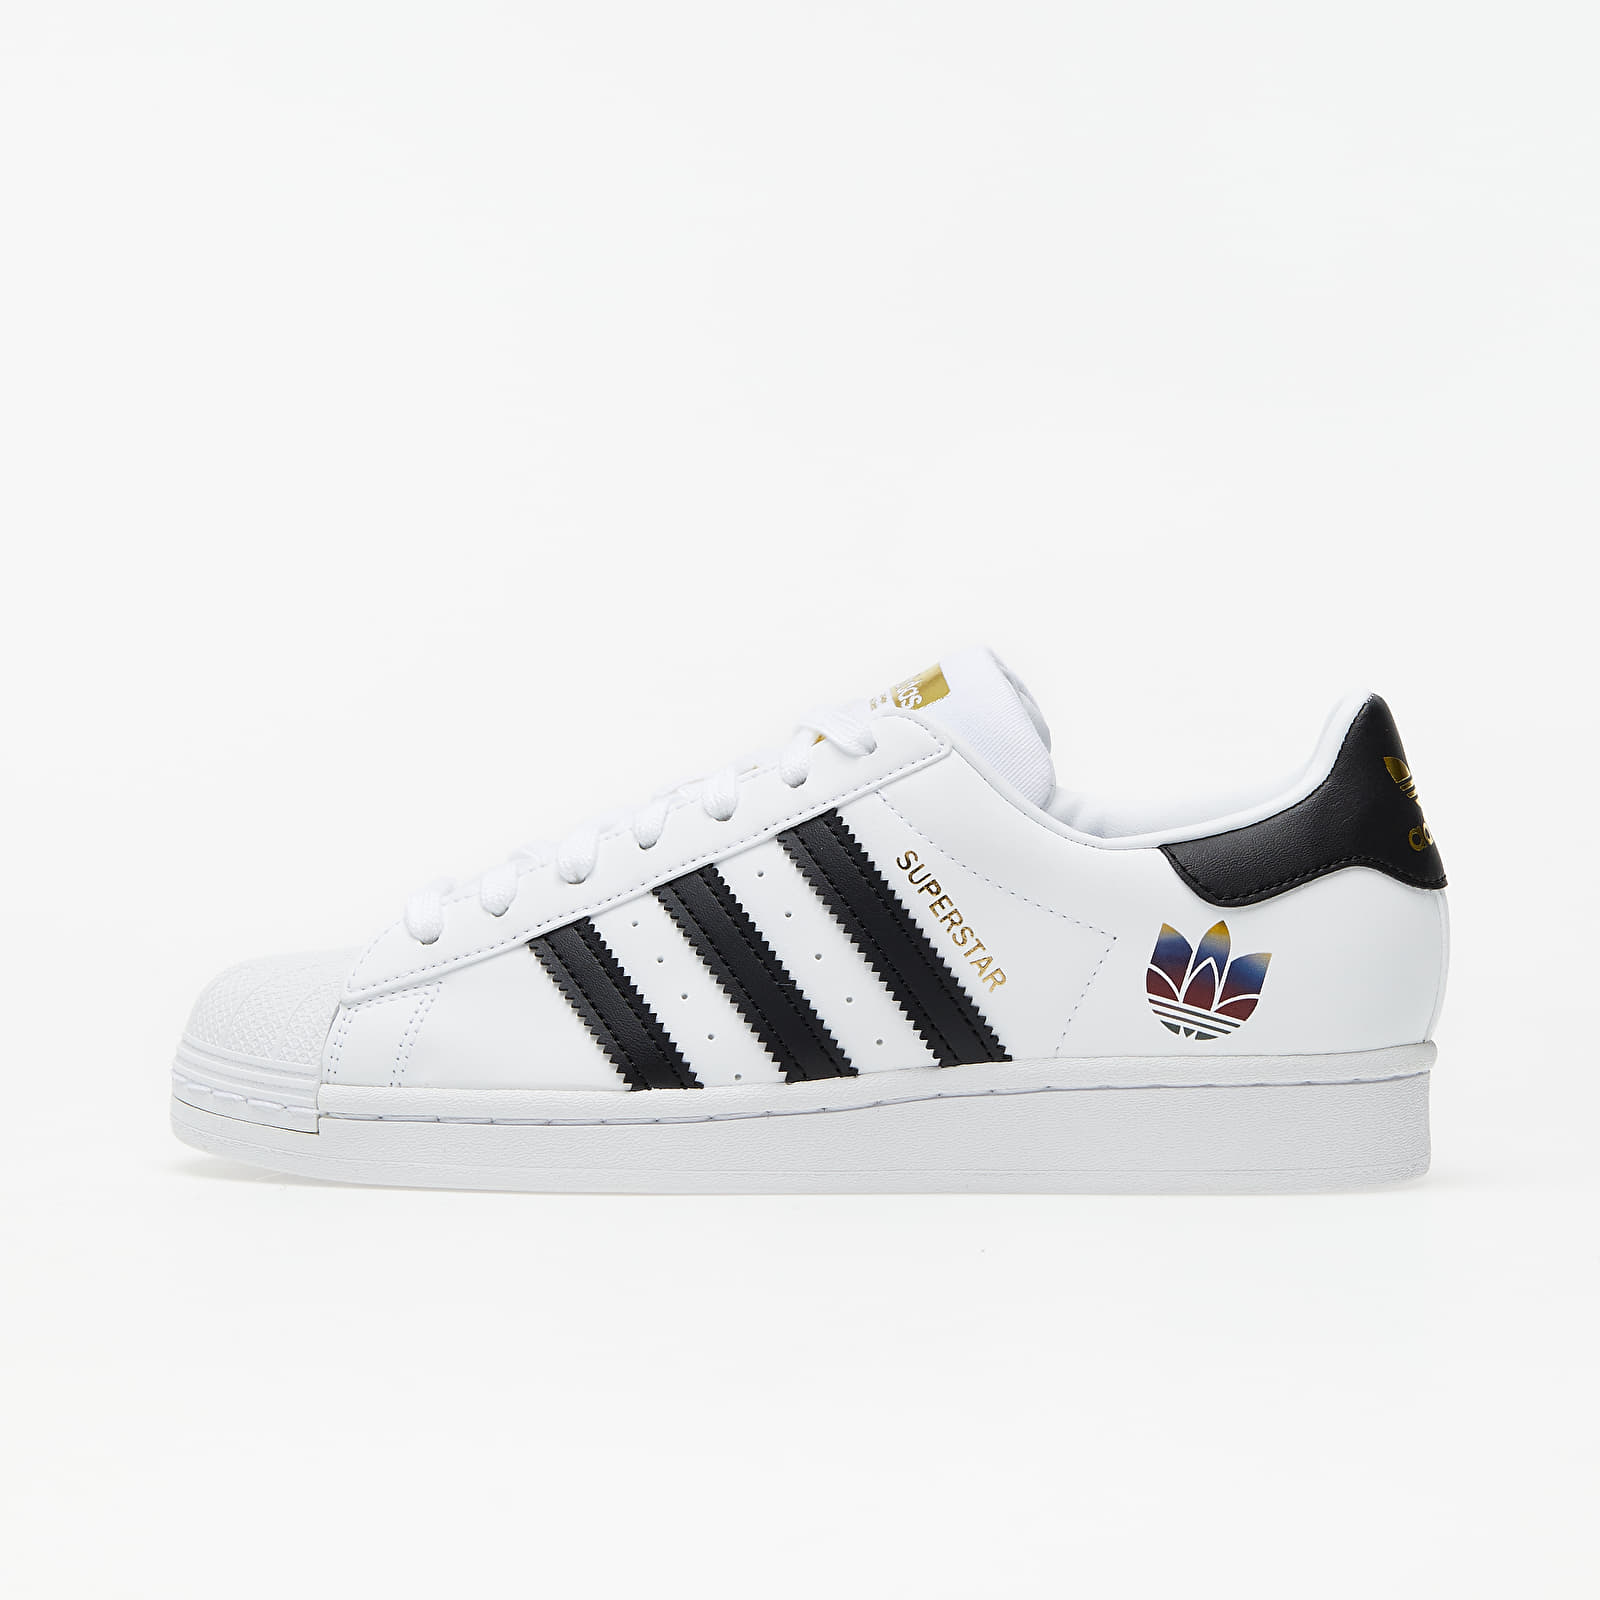 adidas Superstar W Ftw White/ Core Black/ Gold Metalic EUR 39 1/3